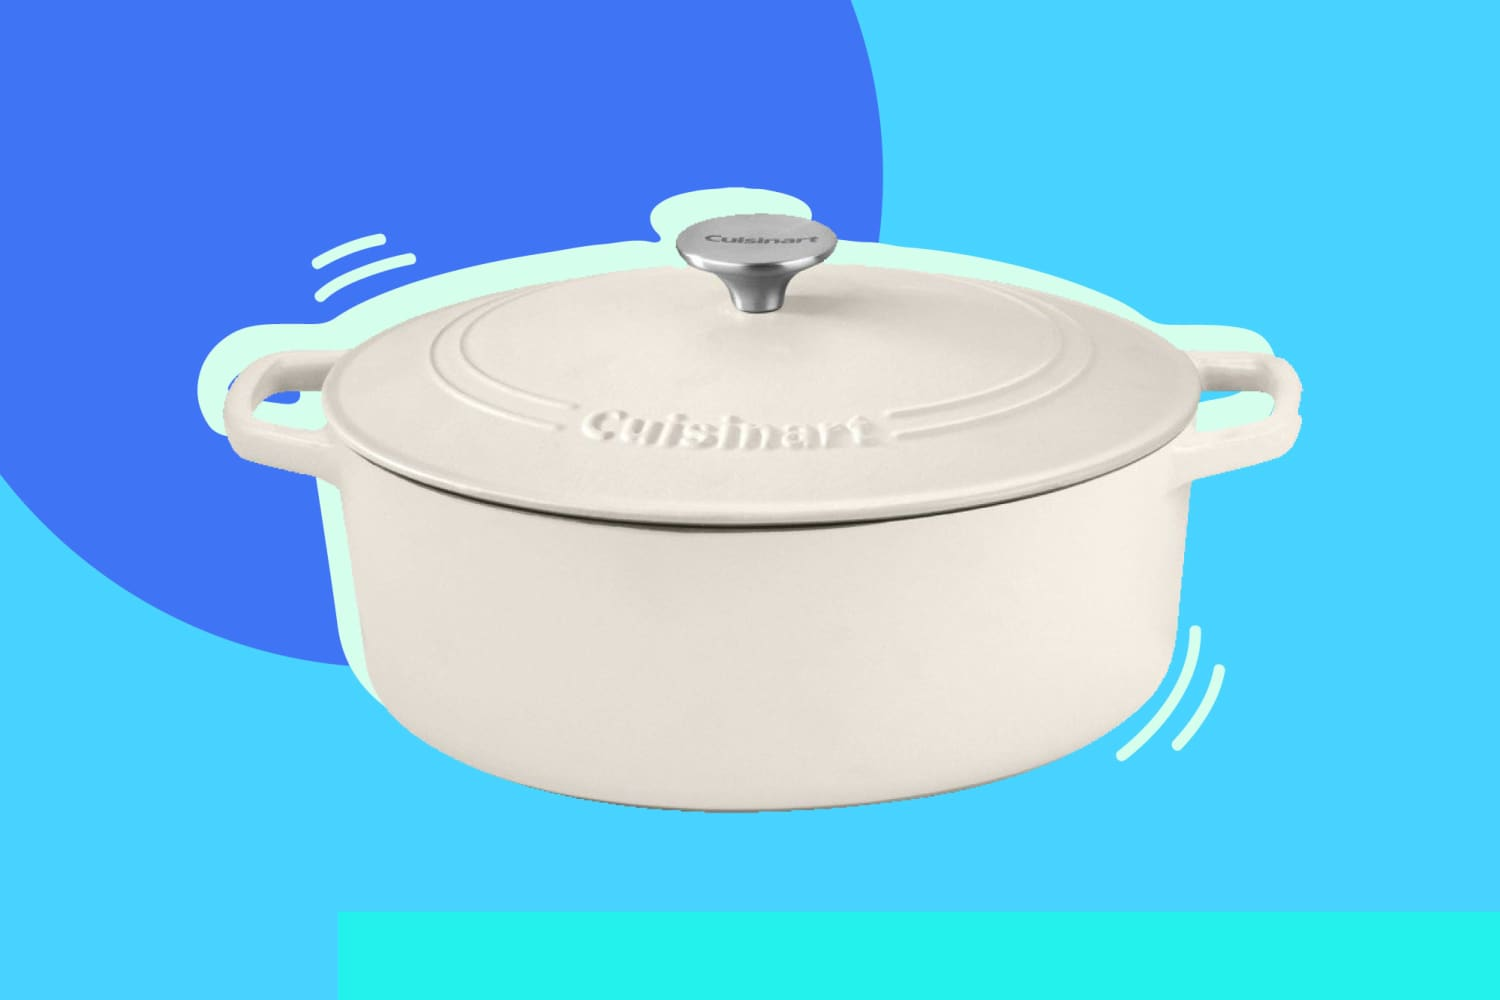 These Le Creuset Look-Alikes Are 45 Percent Off Today Only on Amazon